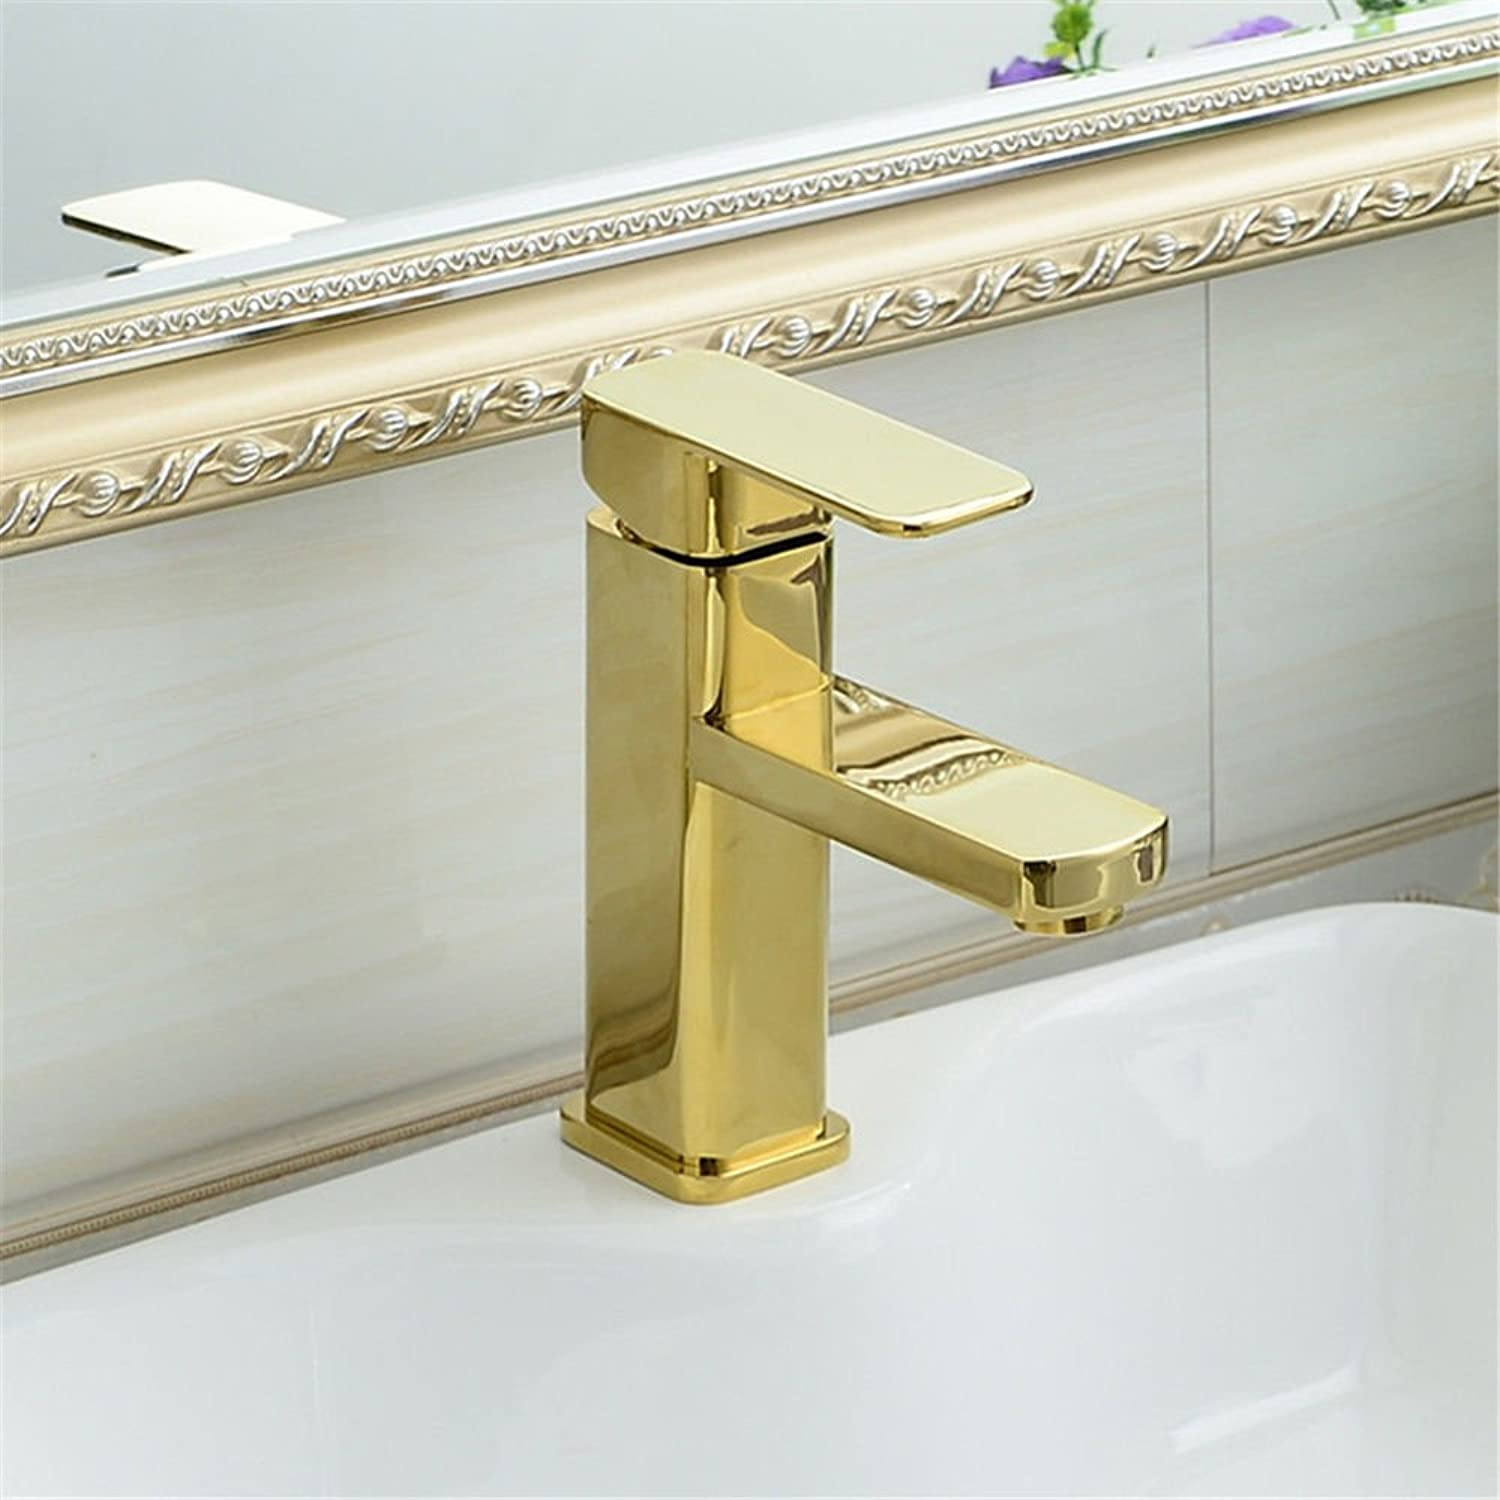 AQMMi Basin Sink Mixer Tap for Lavatory gold Single Lever Single Lever Hot and Cold Water Bathroom Vanity Sink Faucet